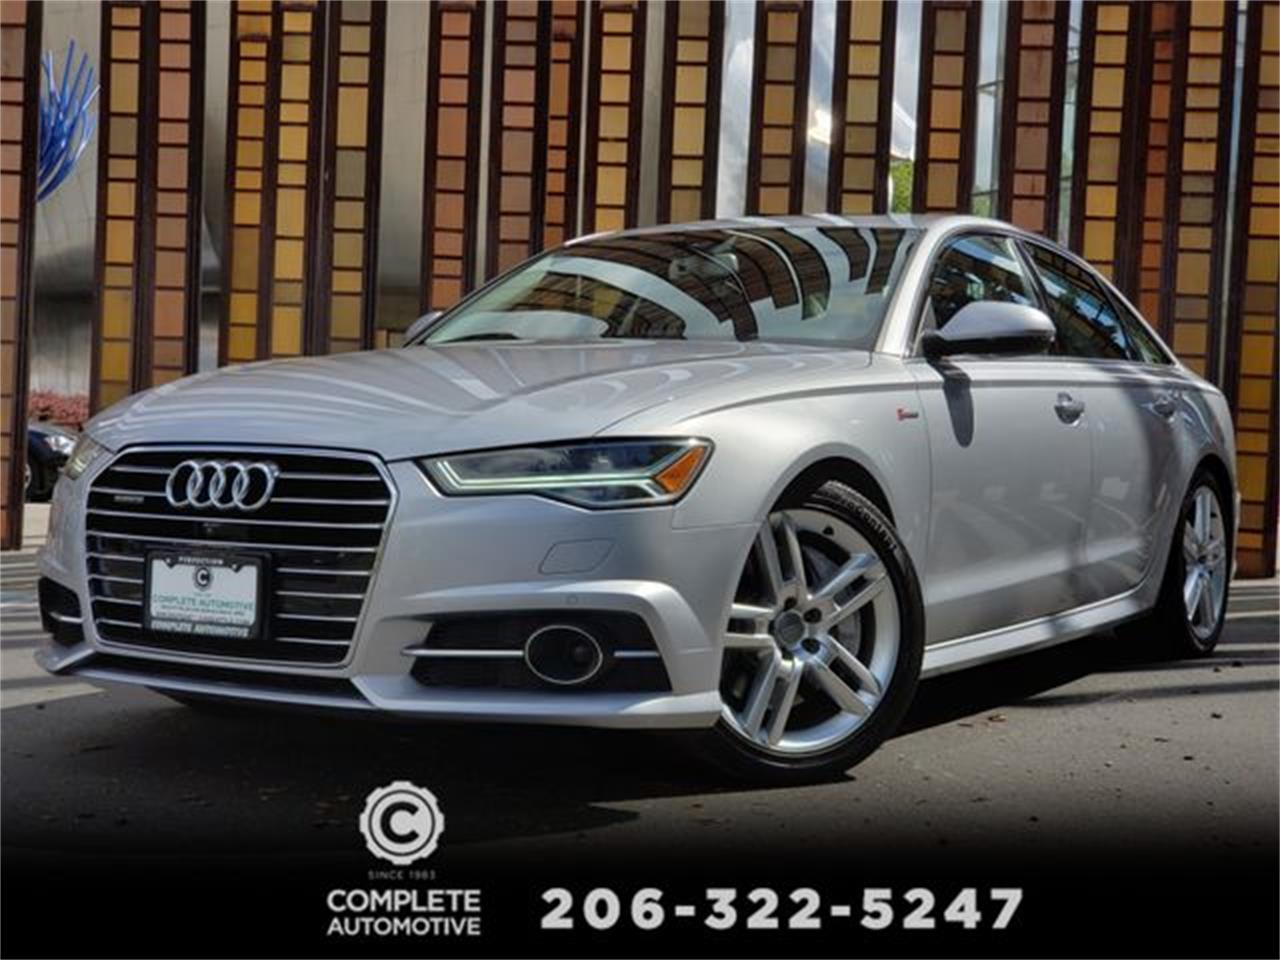 2016 Audi A6 (CC-1243701) for sale in Seattle, Washington